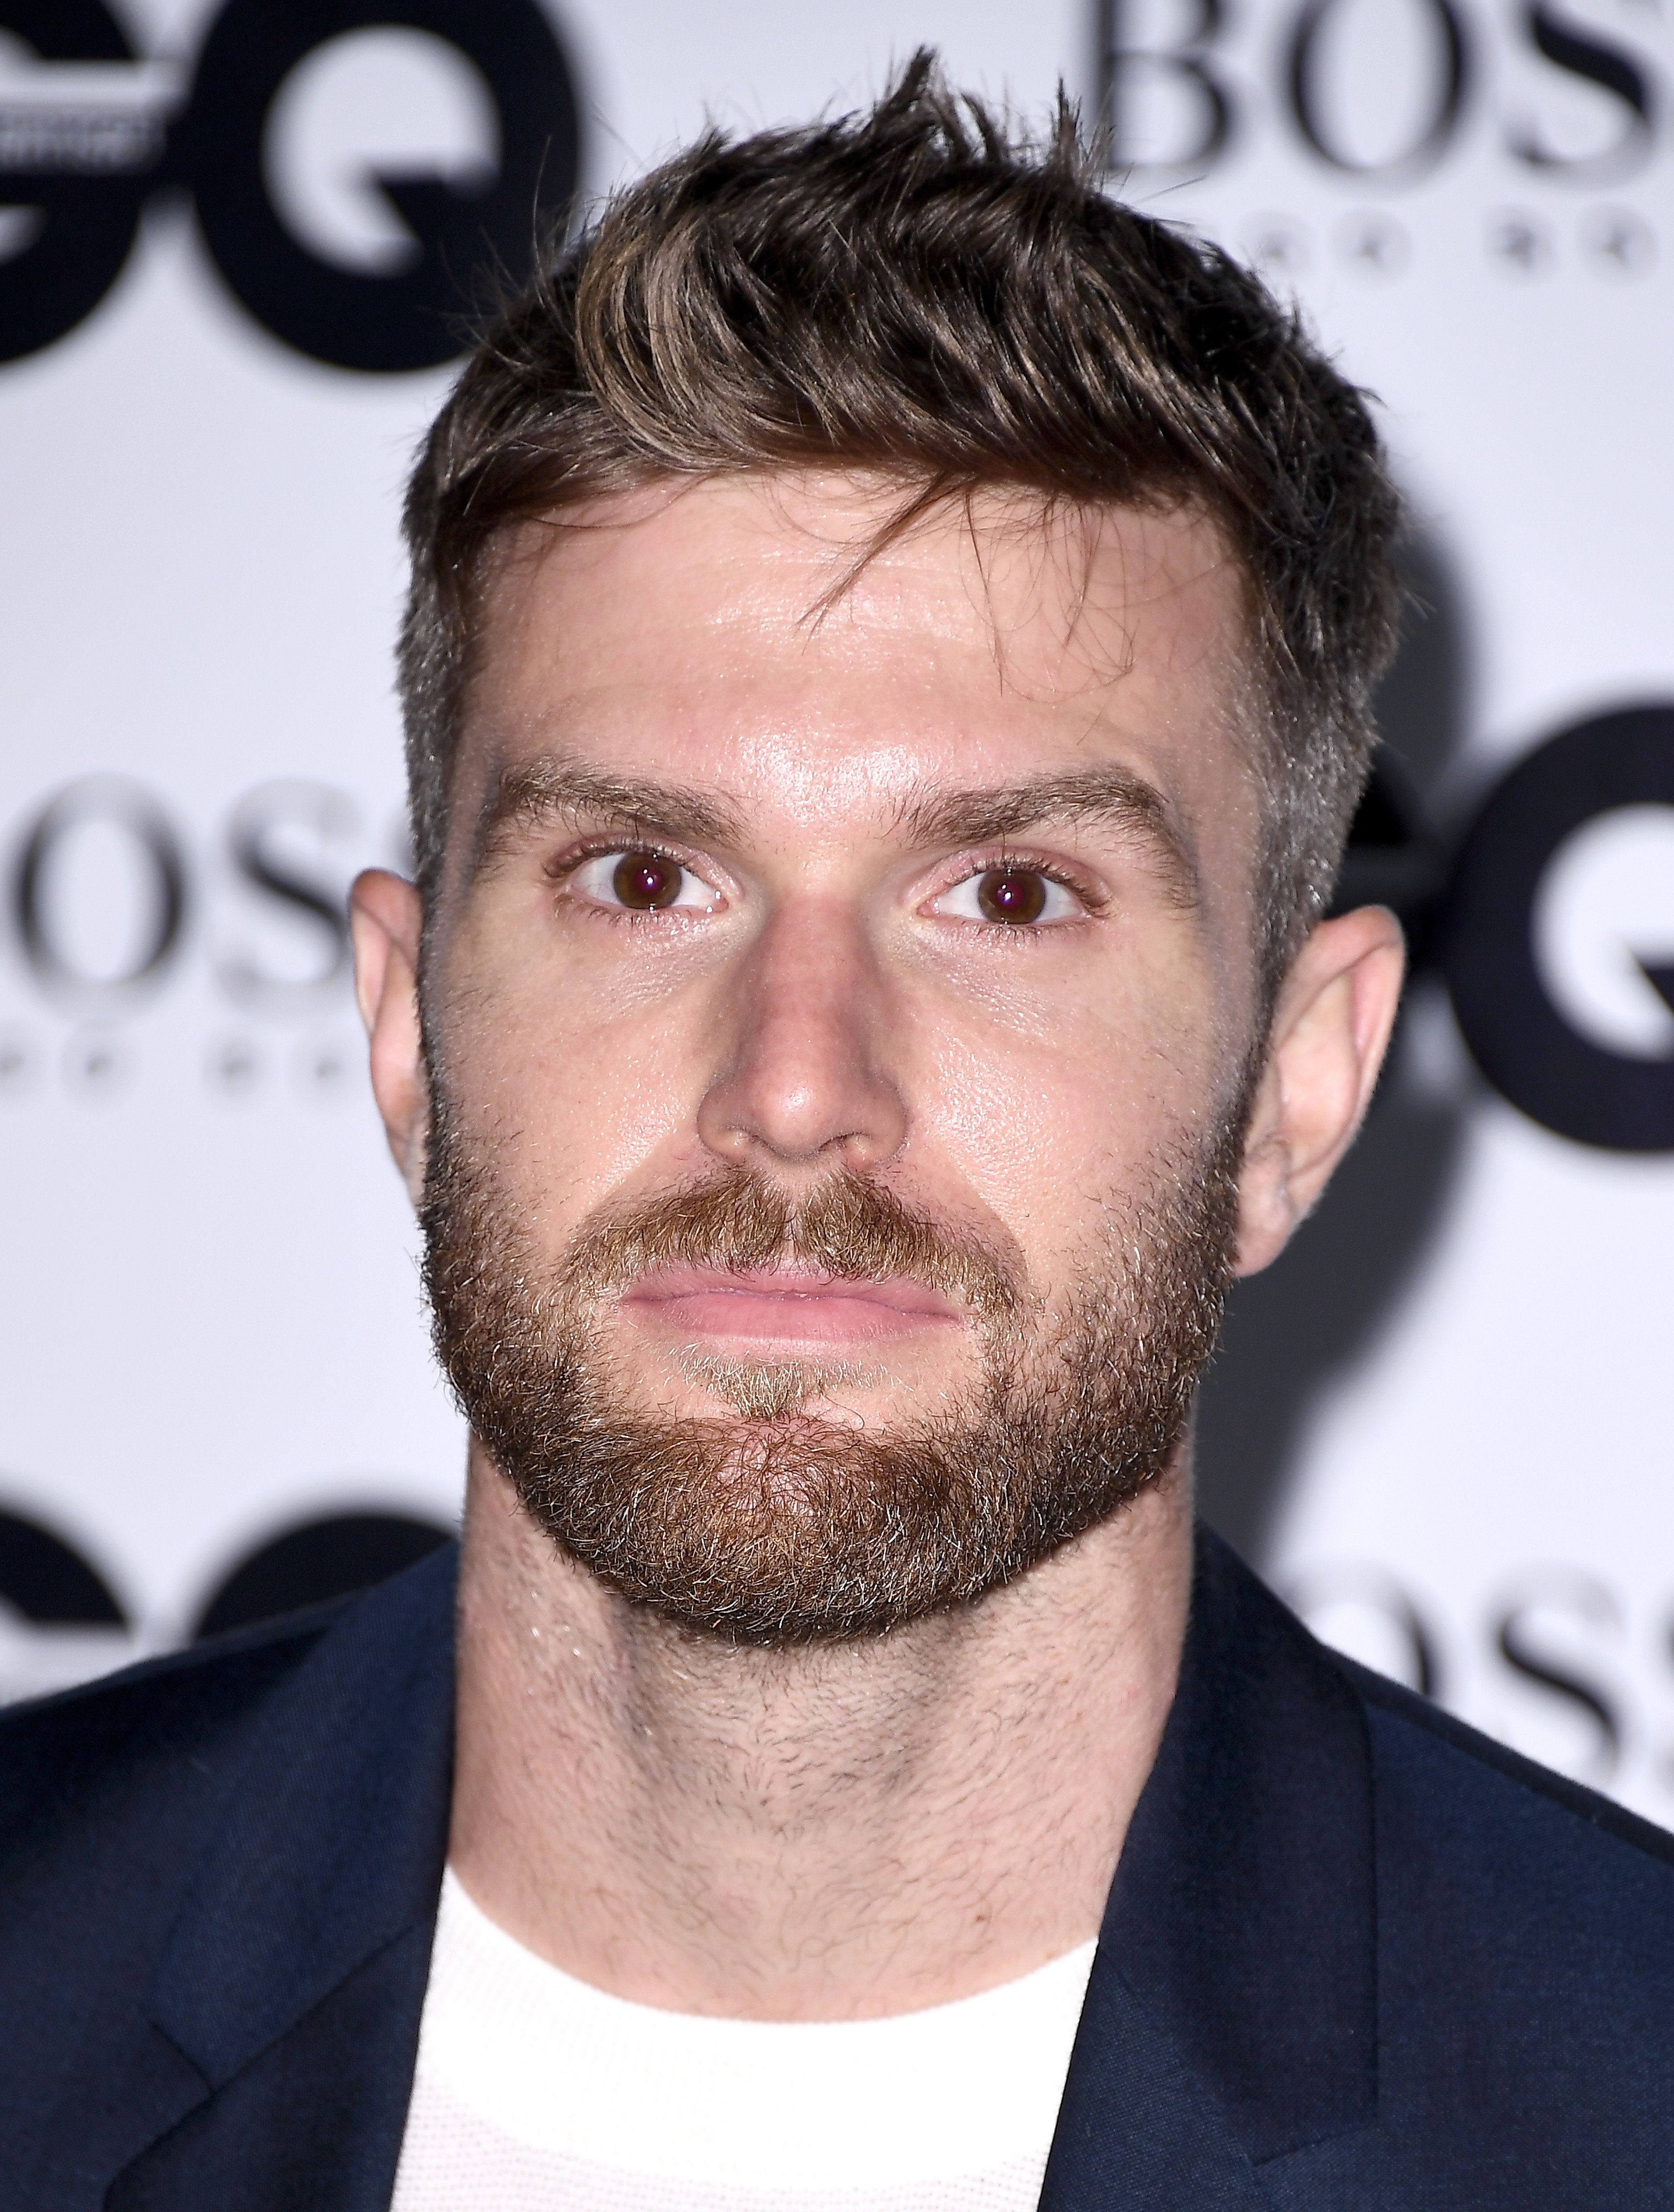 Extra Camp Host Joel Dommett Says Dec Would Be 'Fine On His Own' Hosting 'I'm A